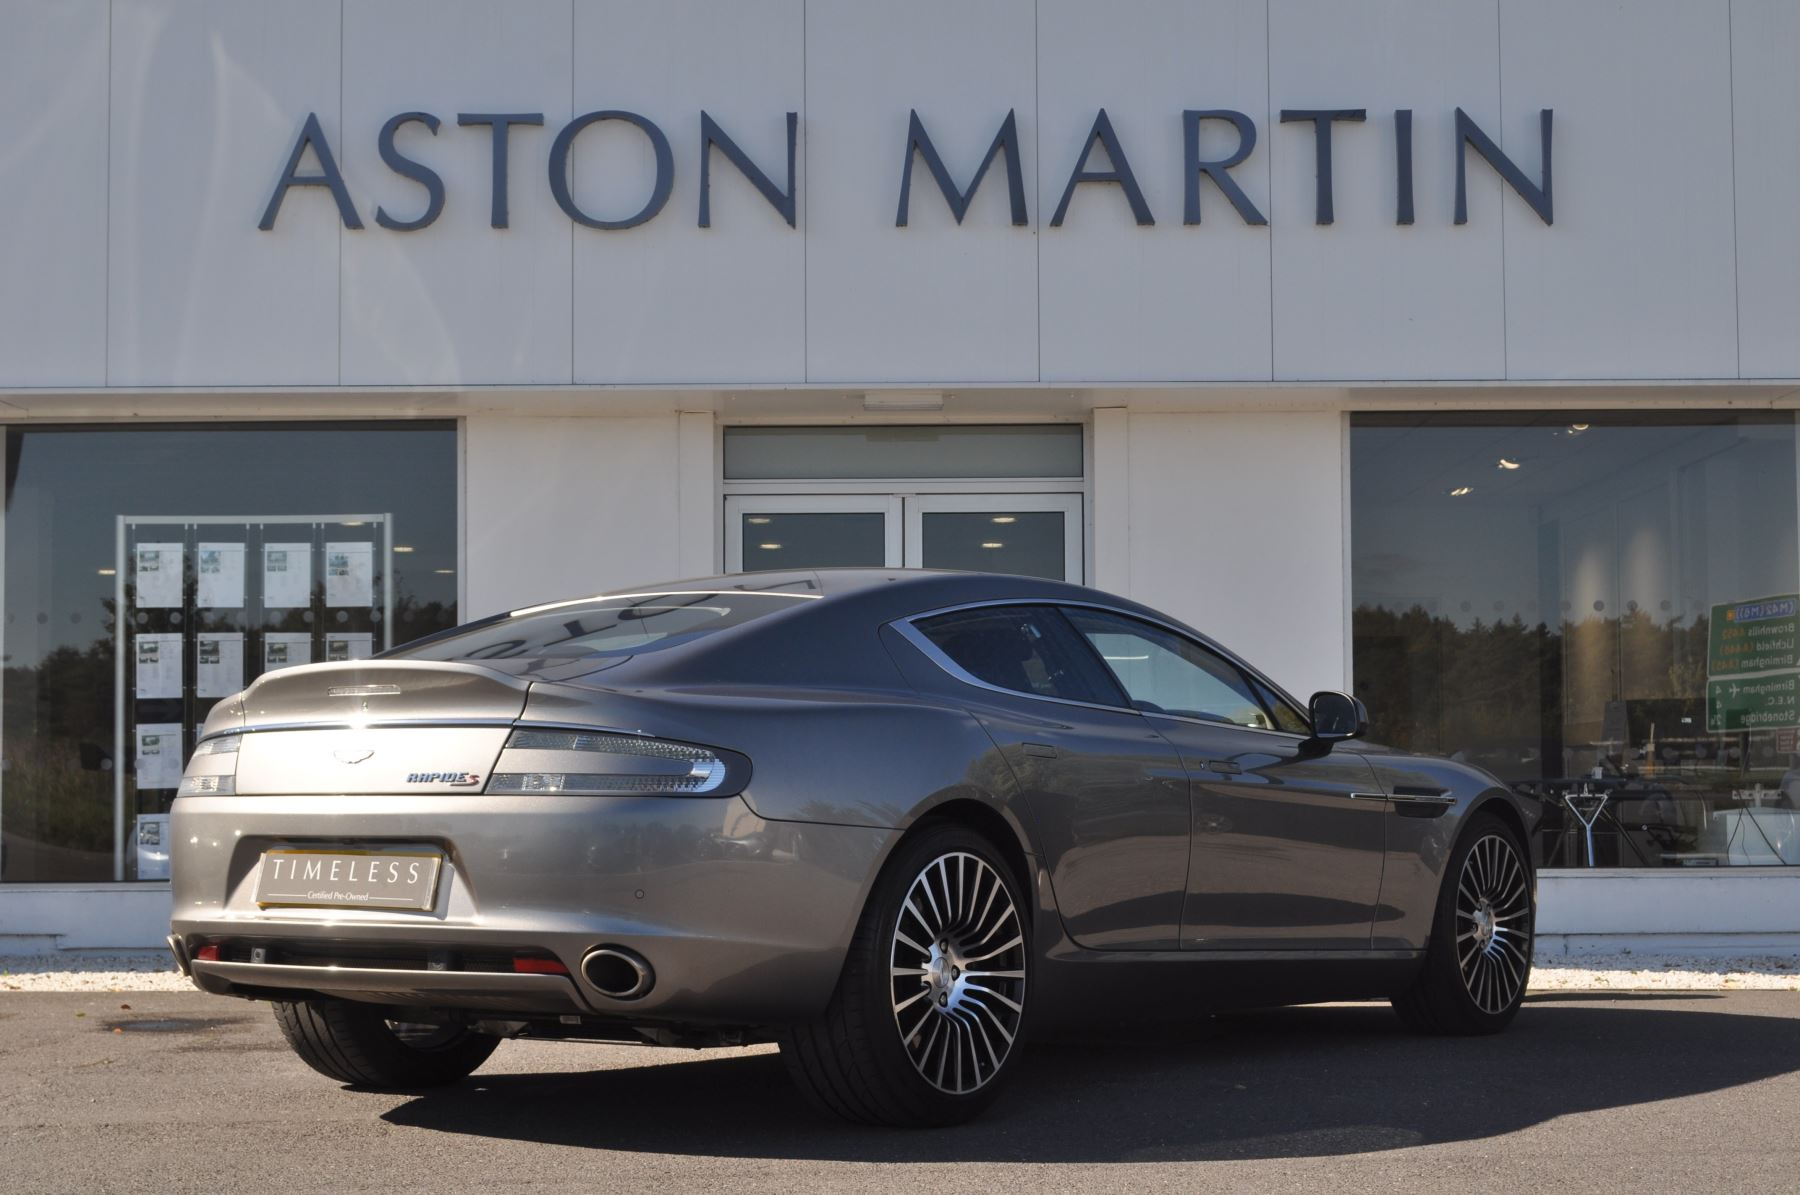 Aston Martin Rapide S V Dr Touchtronic Automatic Door - Aston martin rapid